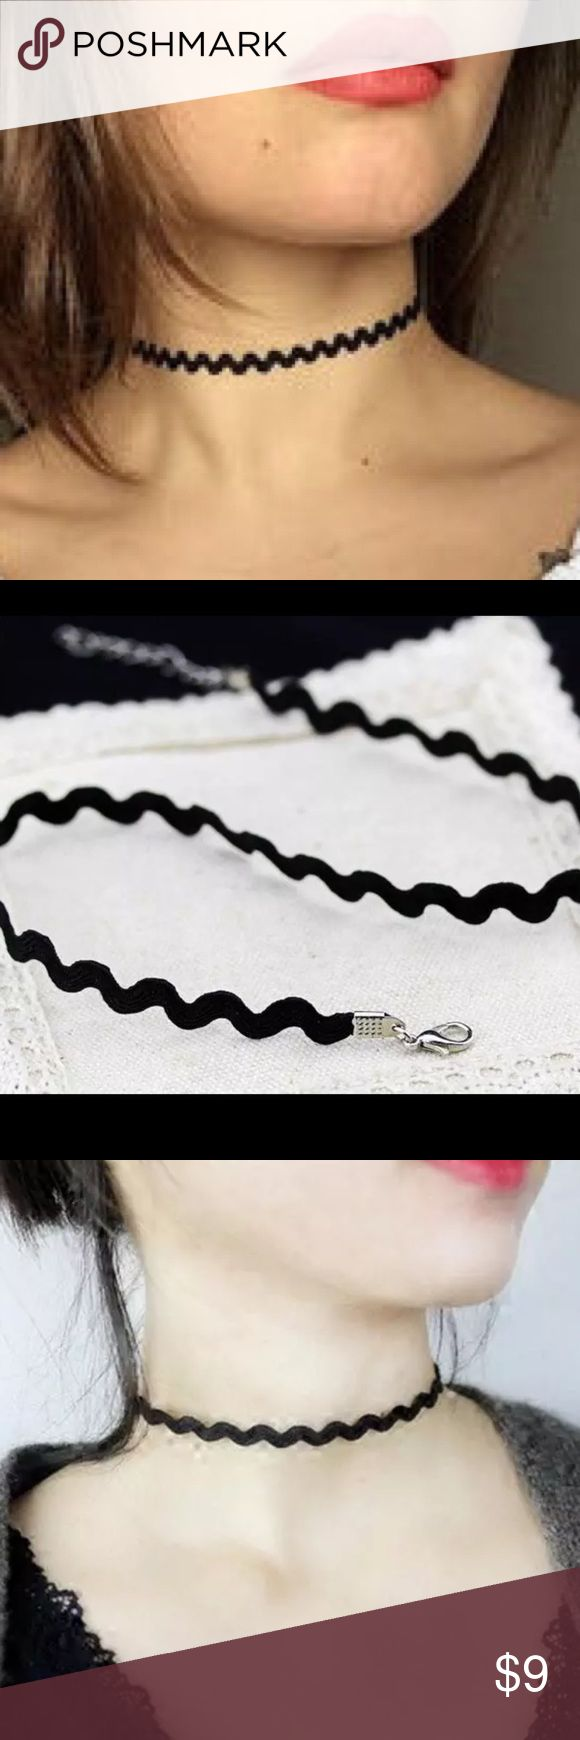 ☀SALE☀️Zigzag style black choker Brand new in packaging zigzag black choker . NO TRADES Jewelry Necklaces